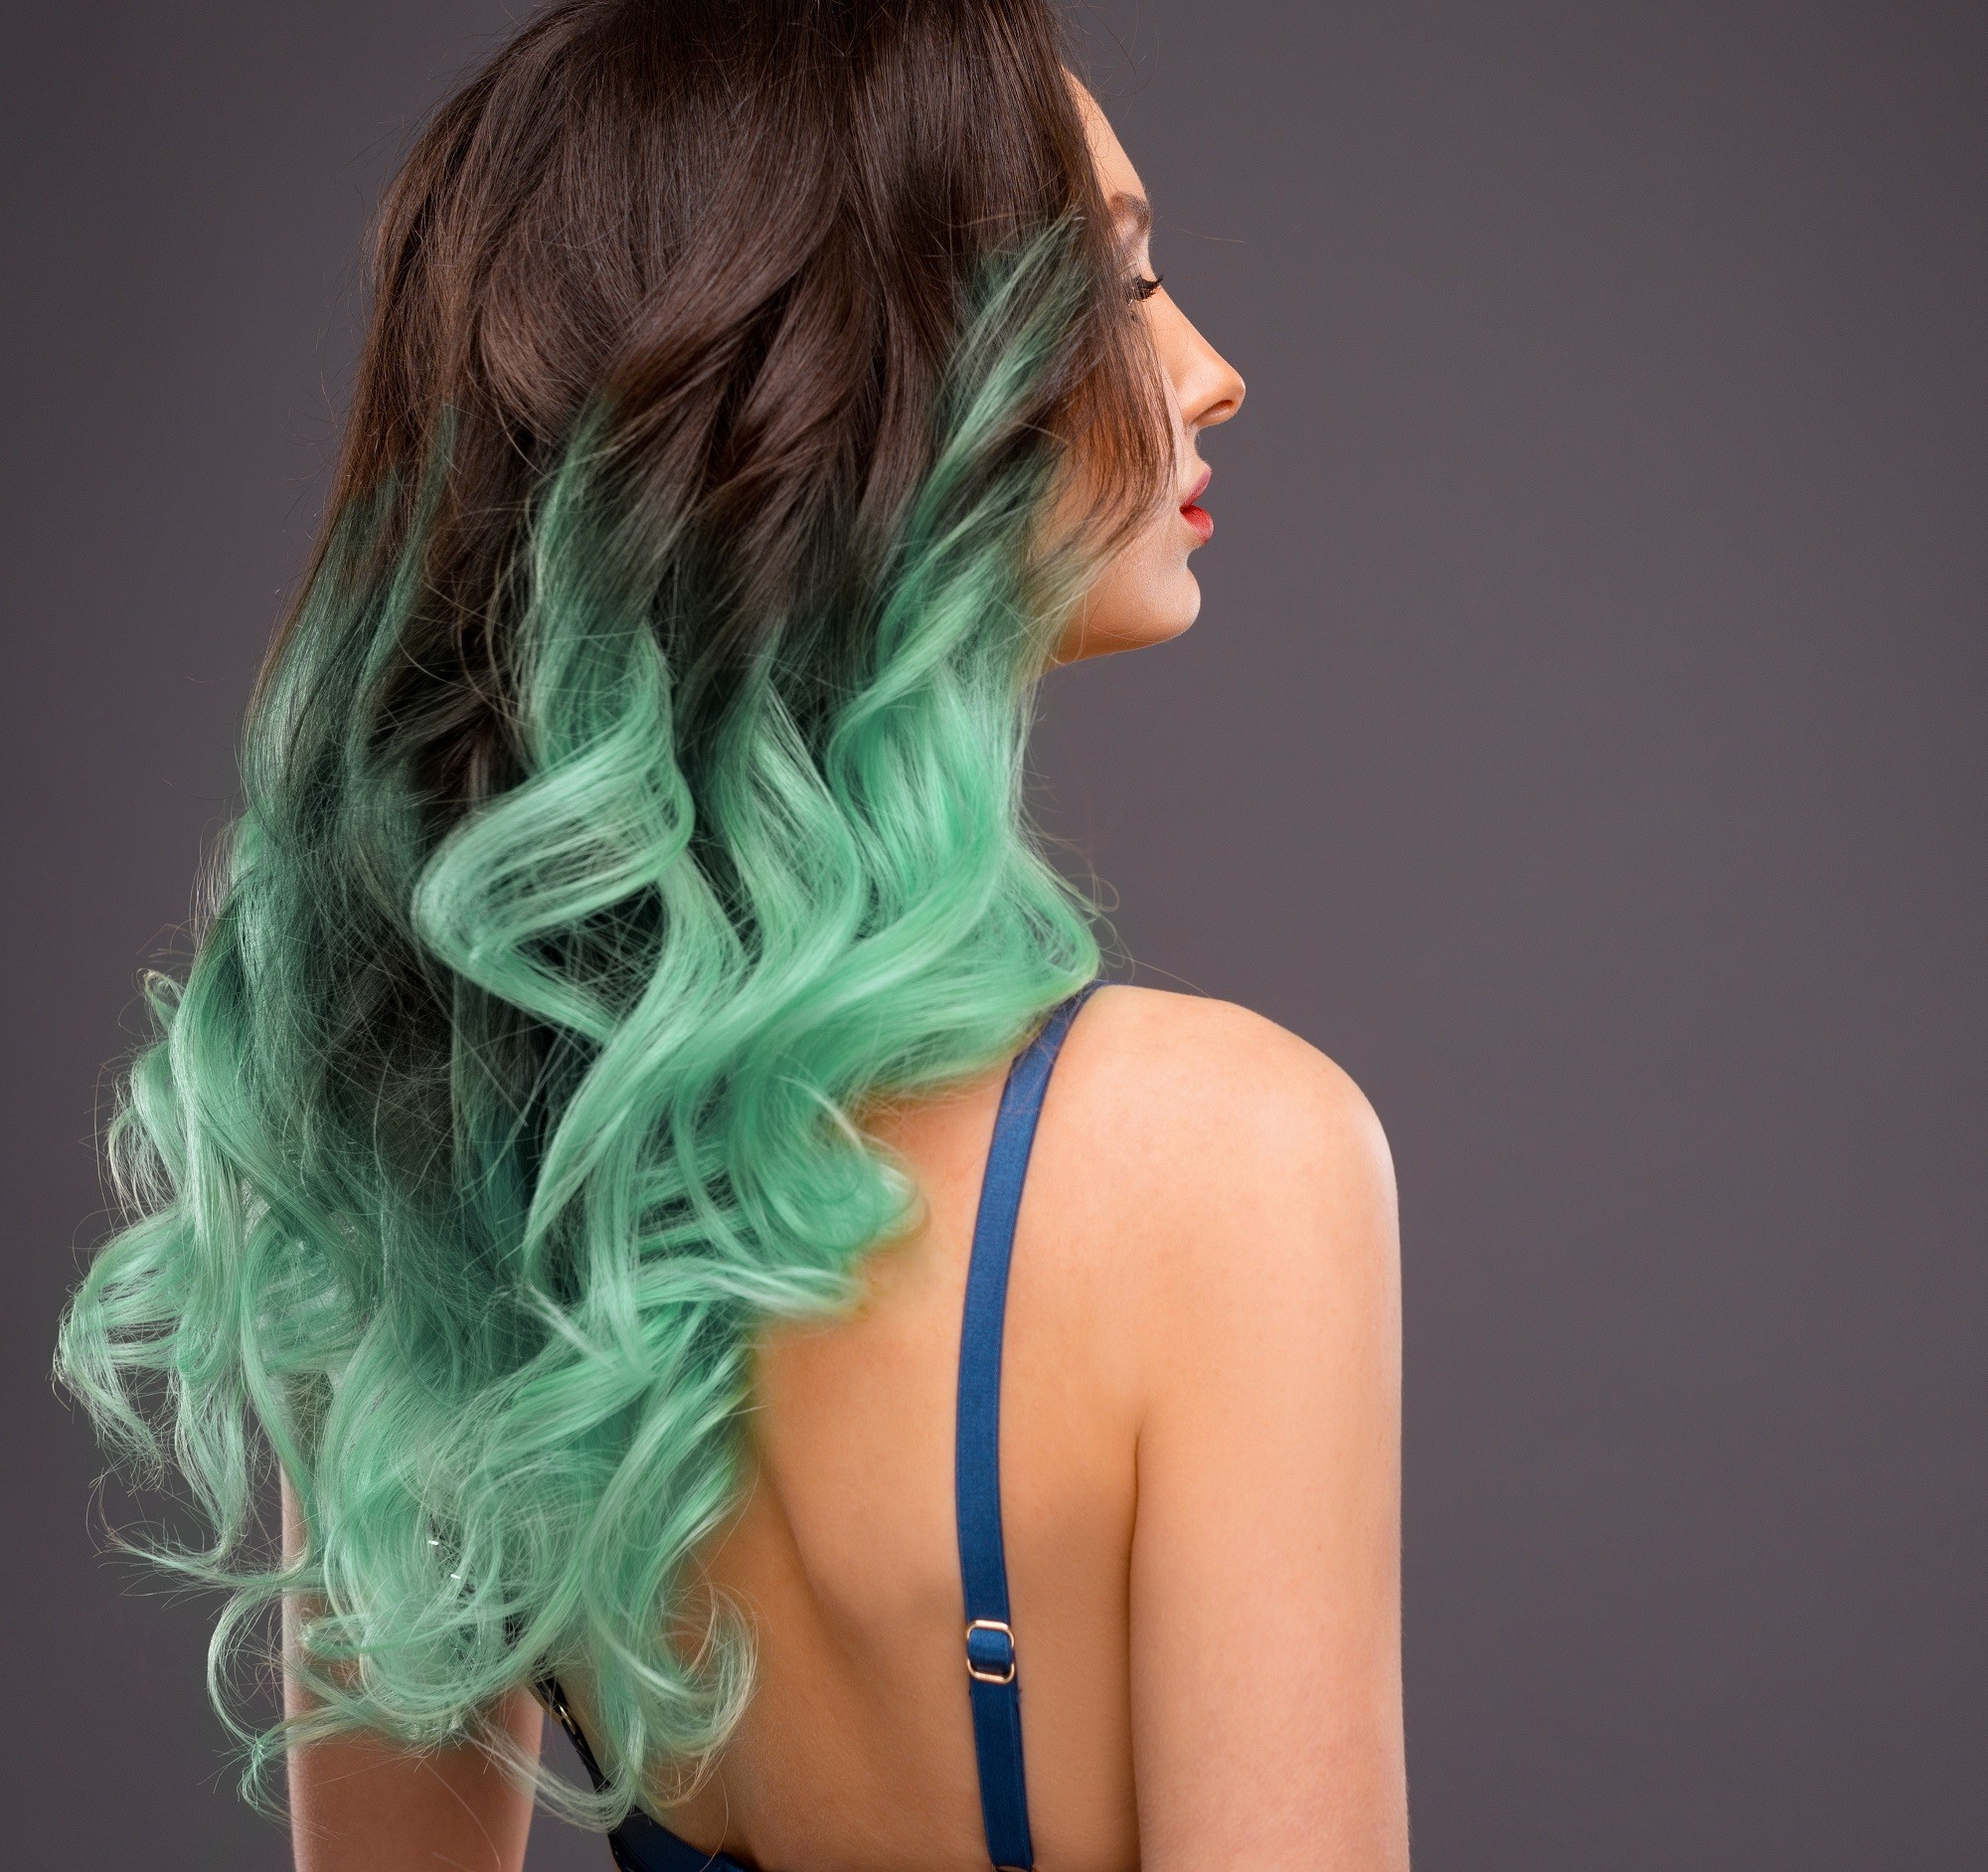 Green hair: Woman with long dip dyed wavy hair